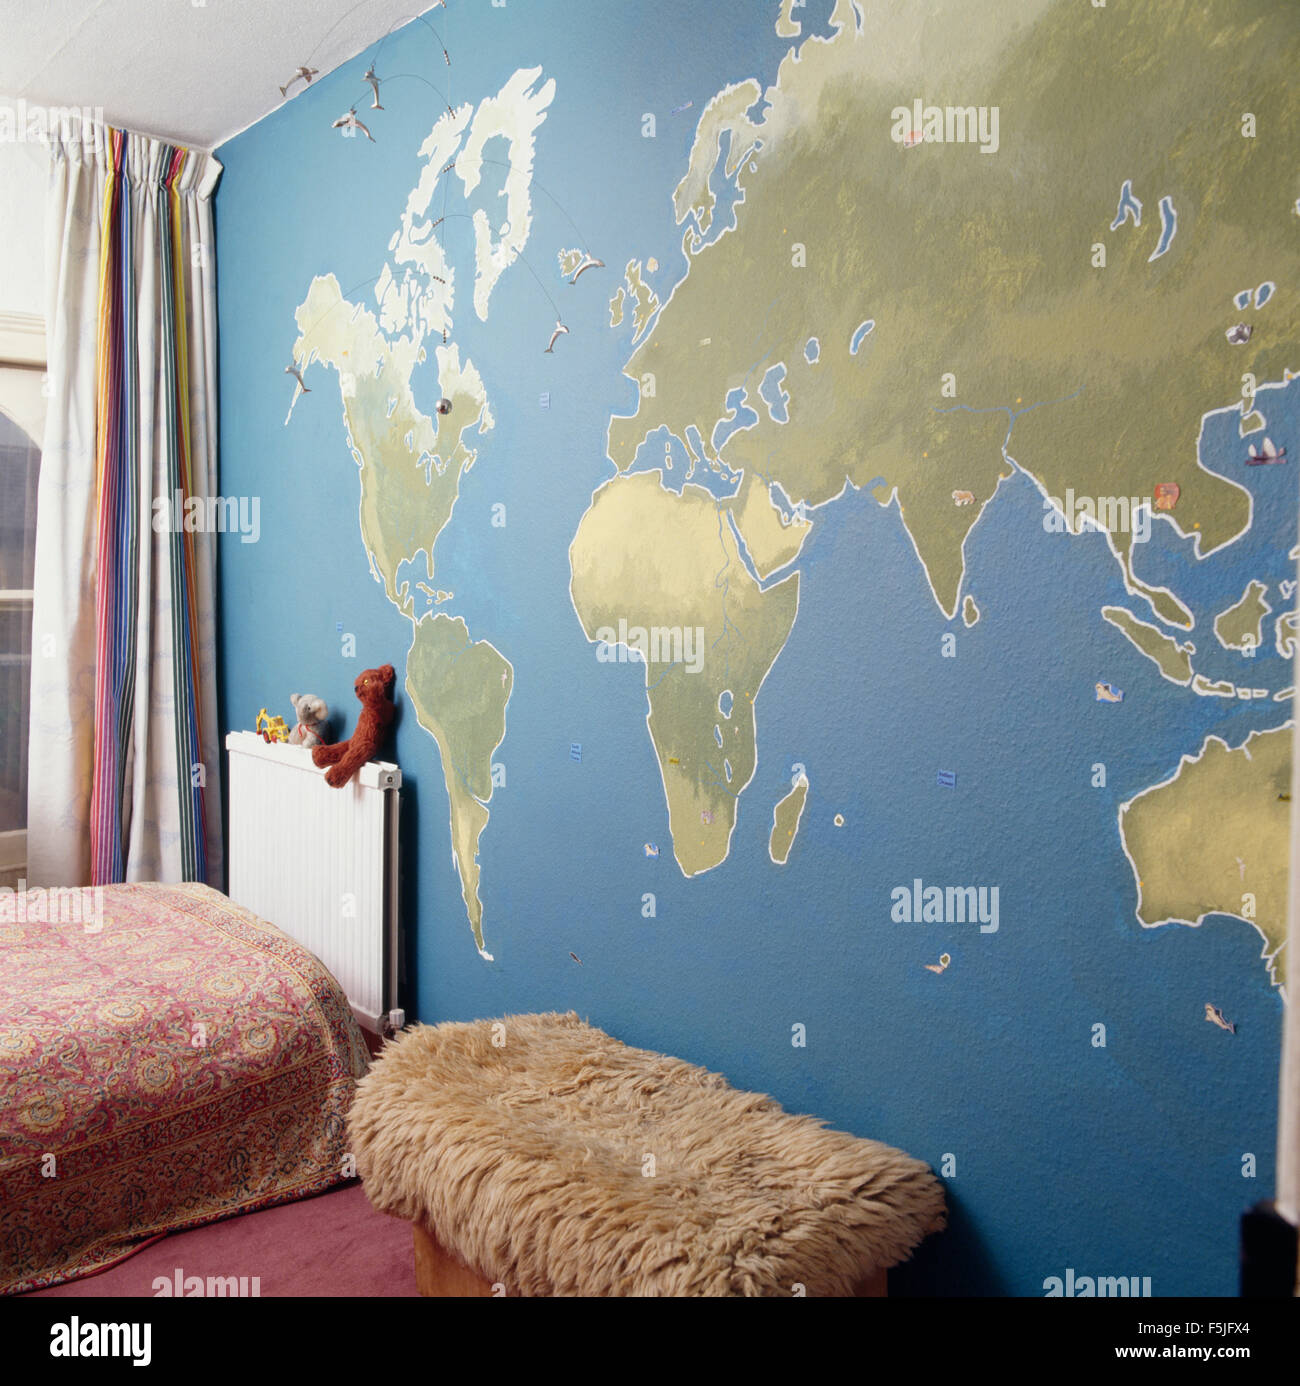 World map on old wall stock photos world map on old wall stock map of the world painted on wall in a childs seventies bedroom stock image gumiabroncs Images